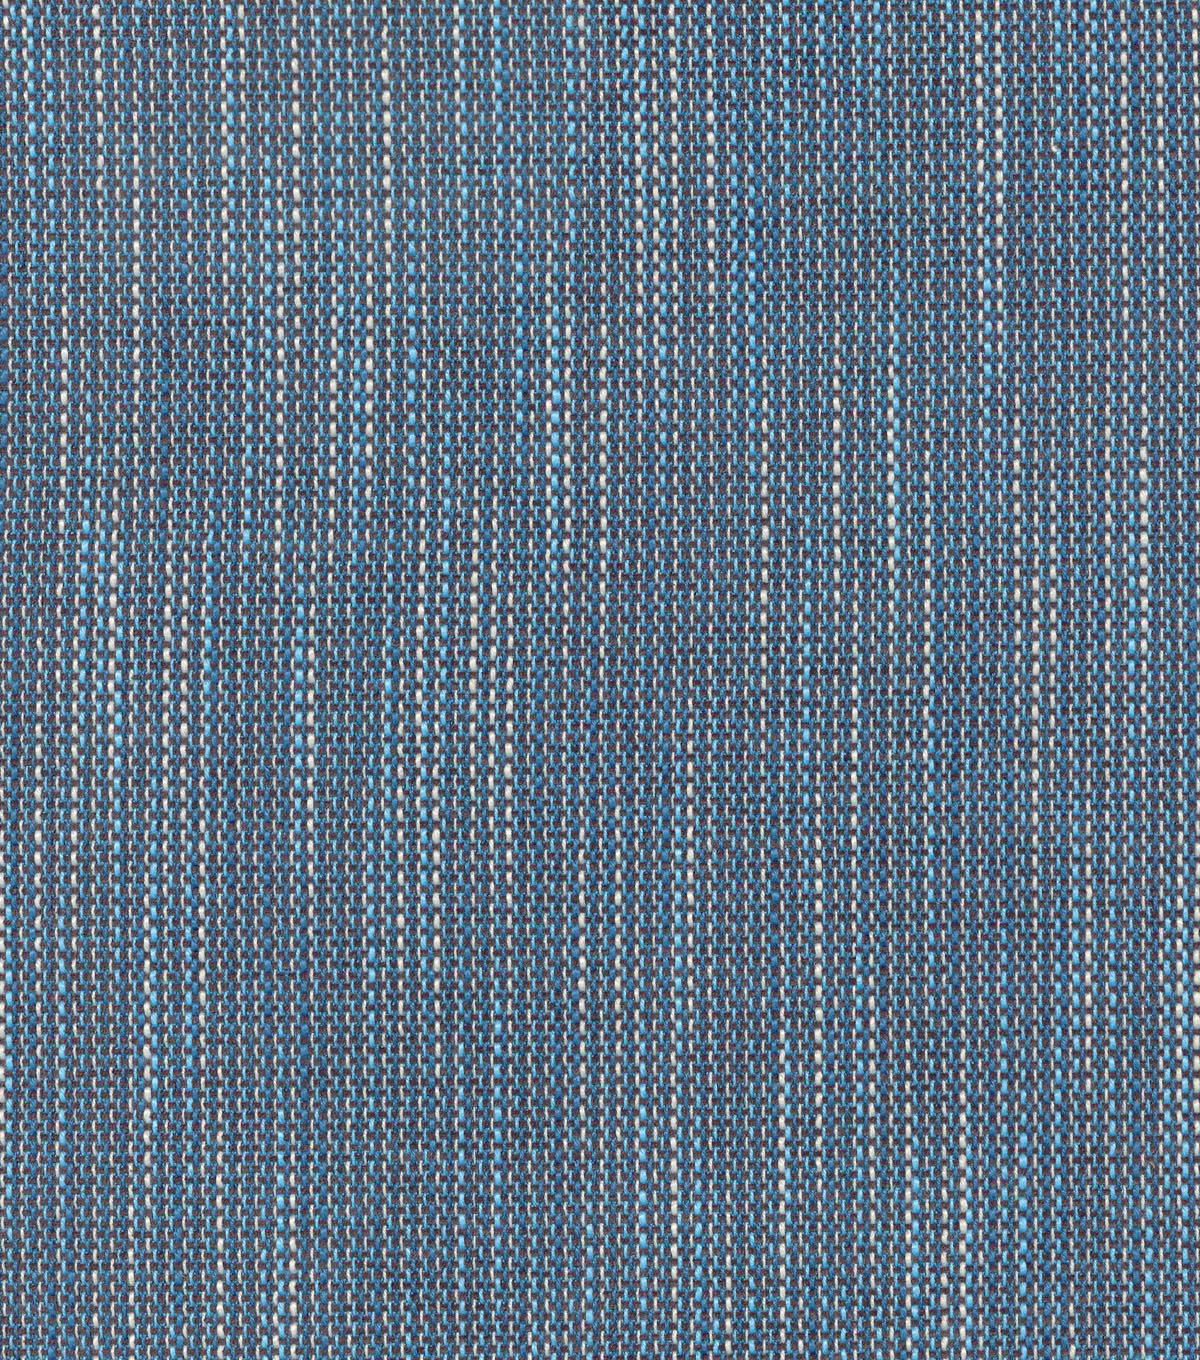 Waverly Upholstery Fabric 58\u0022-Varick/Indigo